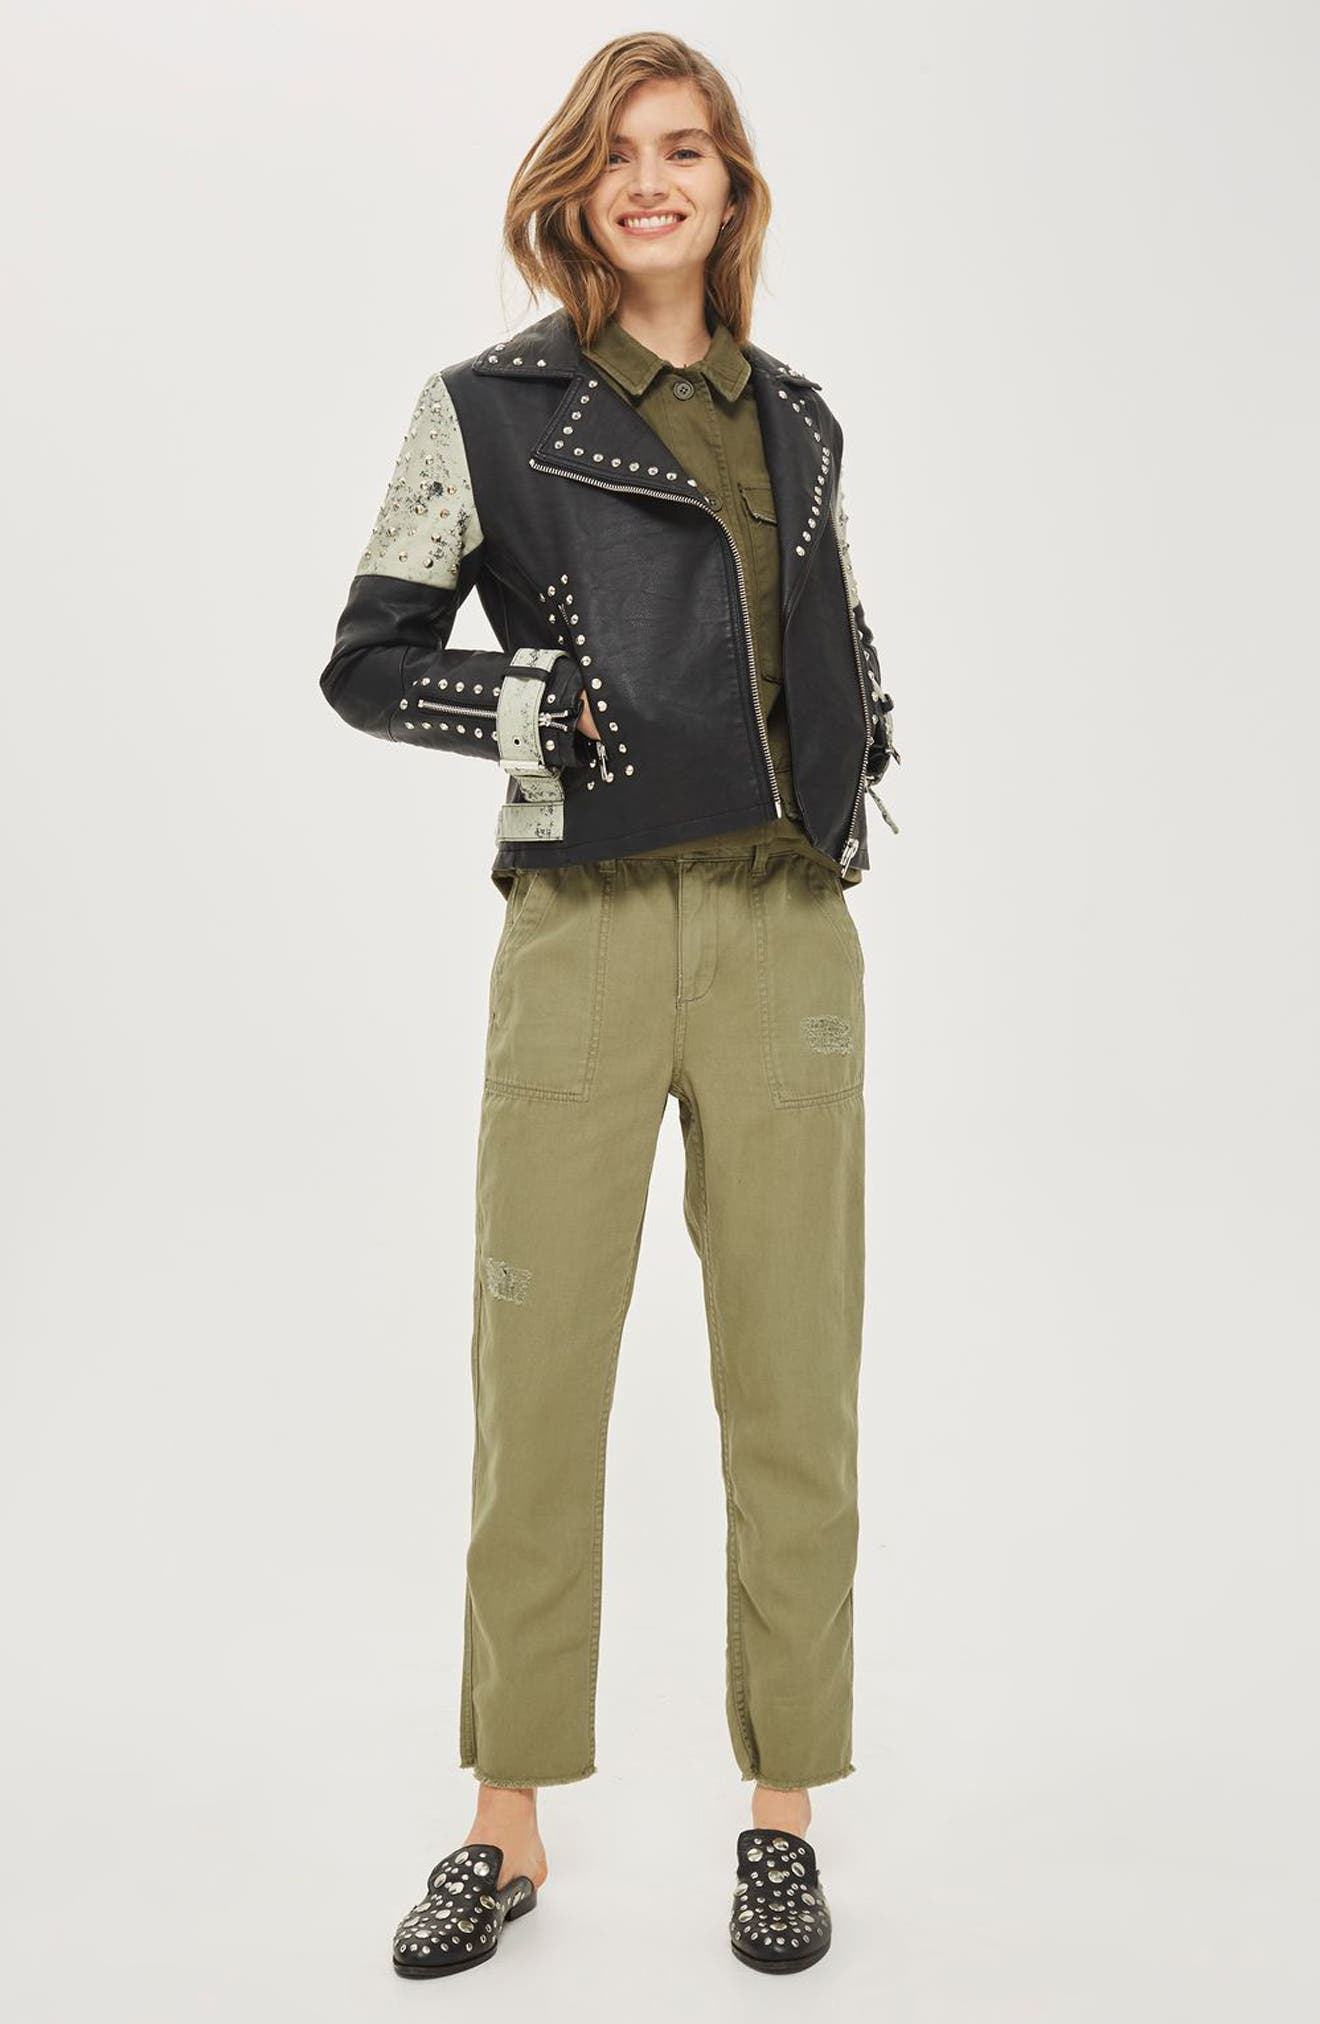 Maddox Painted & Studded Faux Leather Jacket,                             Alternate thumbnail 2, color,                             Black Multi